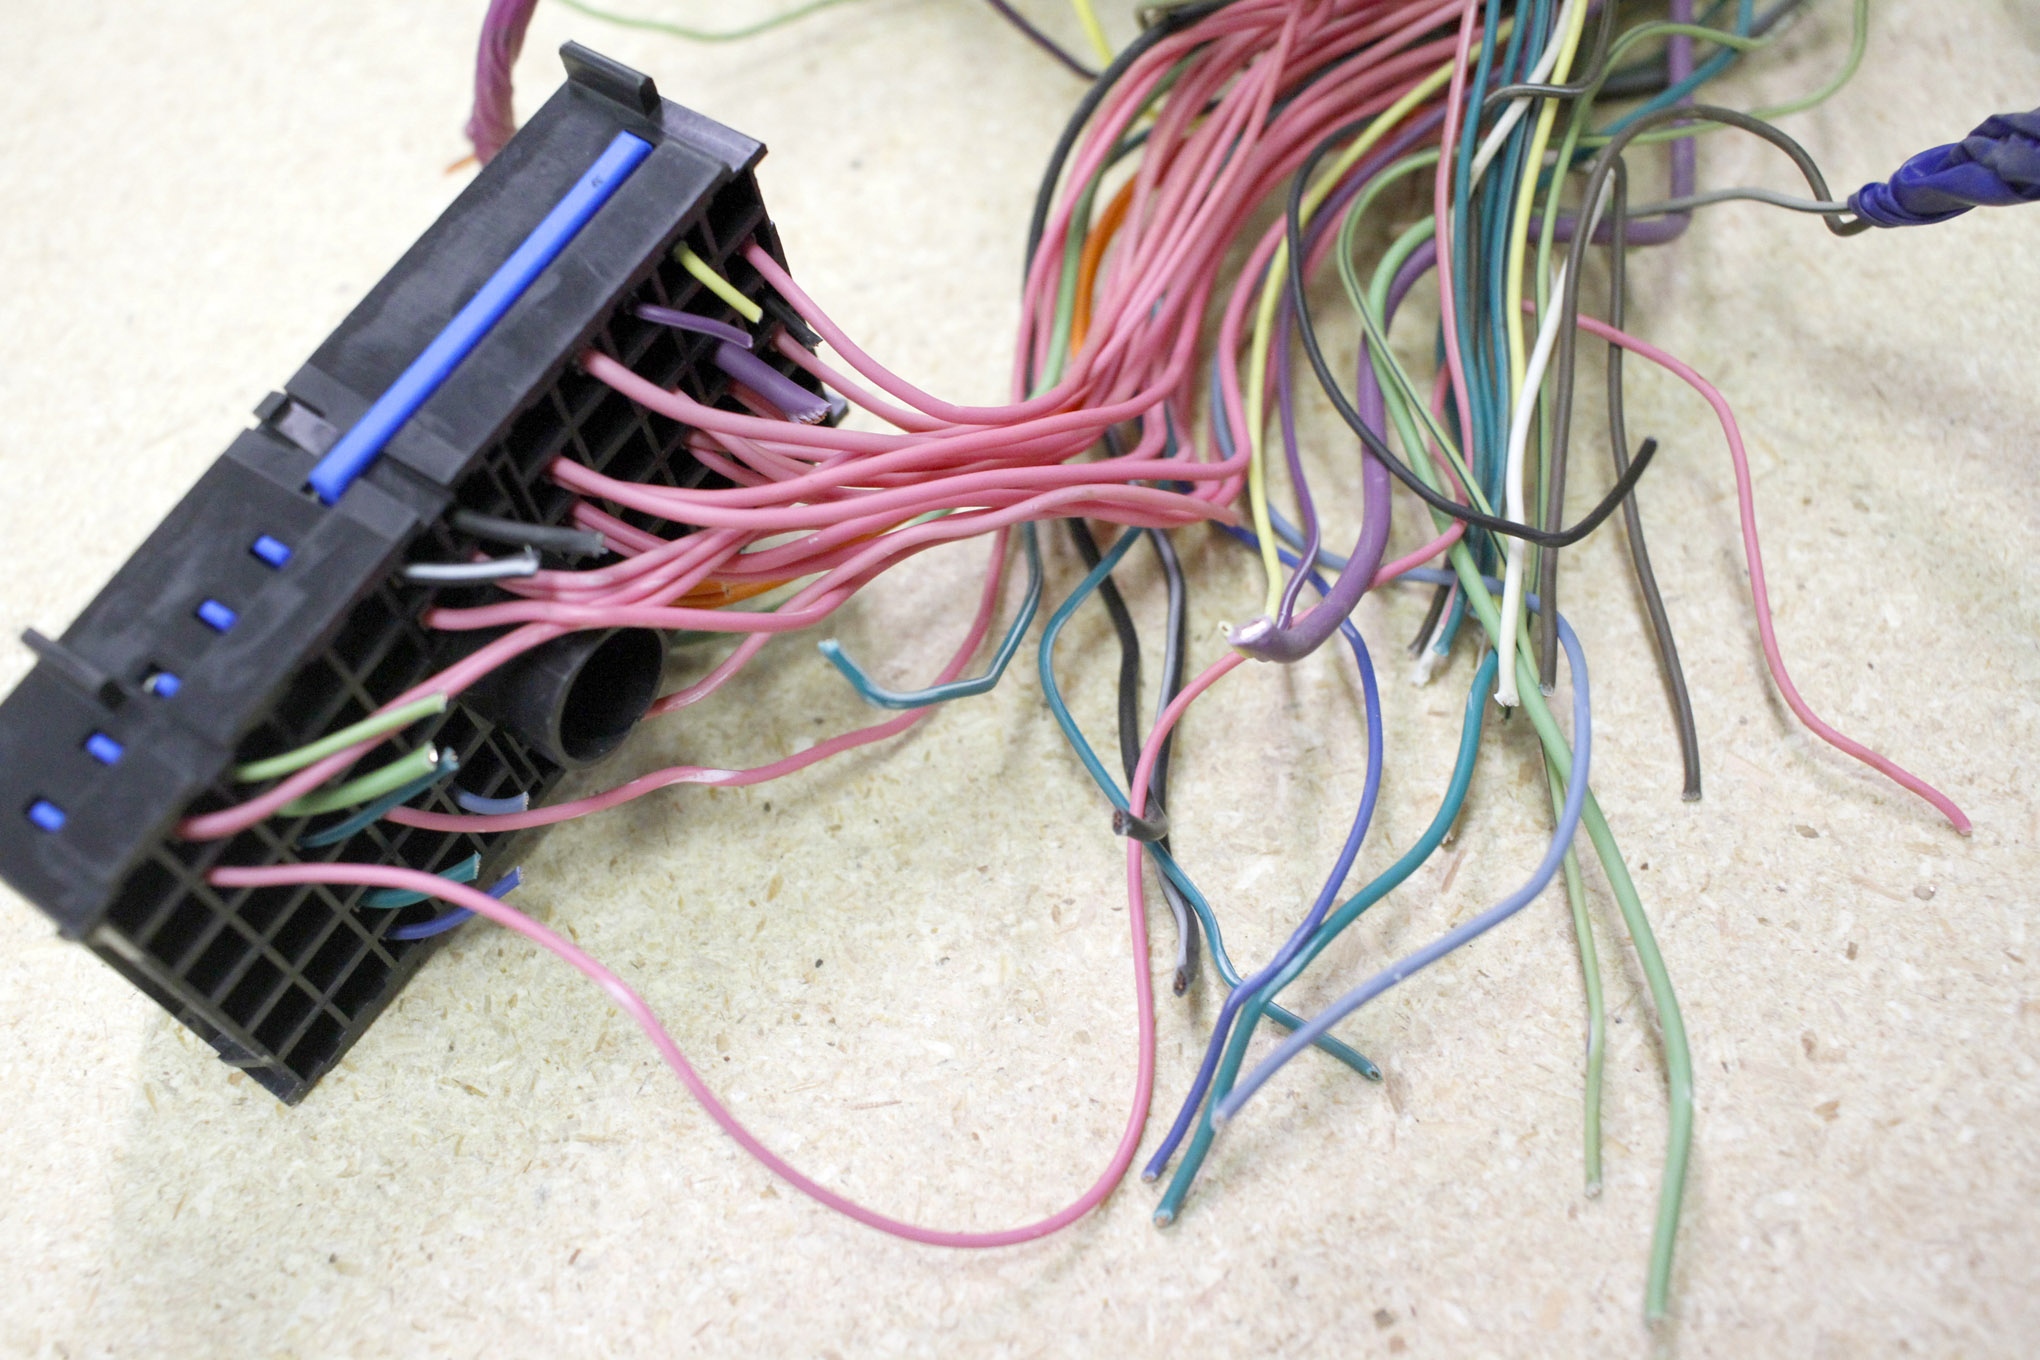 4 Wire Ls Swap Wiring Diagram For Making A Ls - Wiring ...  Wire Ls Swap Wiring Diagram For Making A on